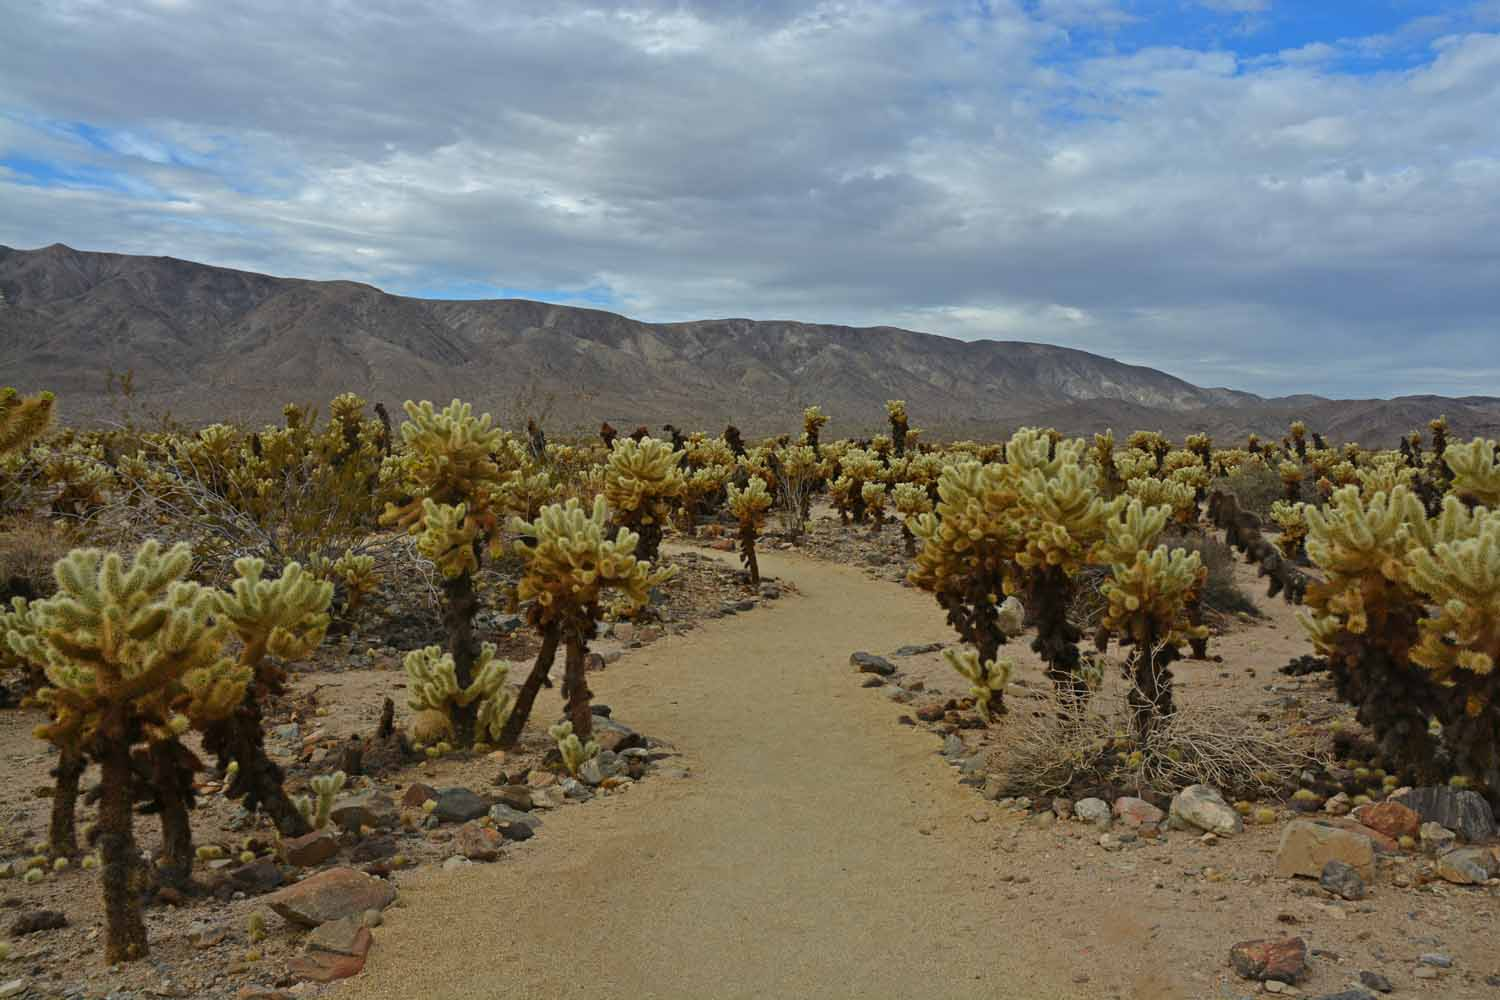 There was a nice trail through the Cholla Cactus Garden.